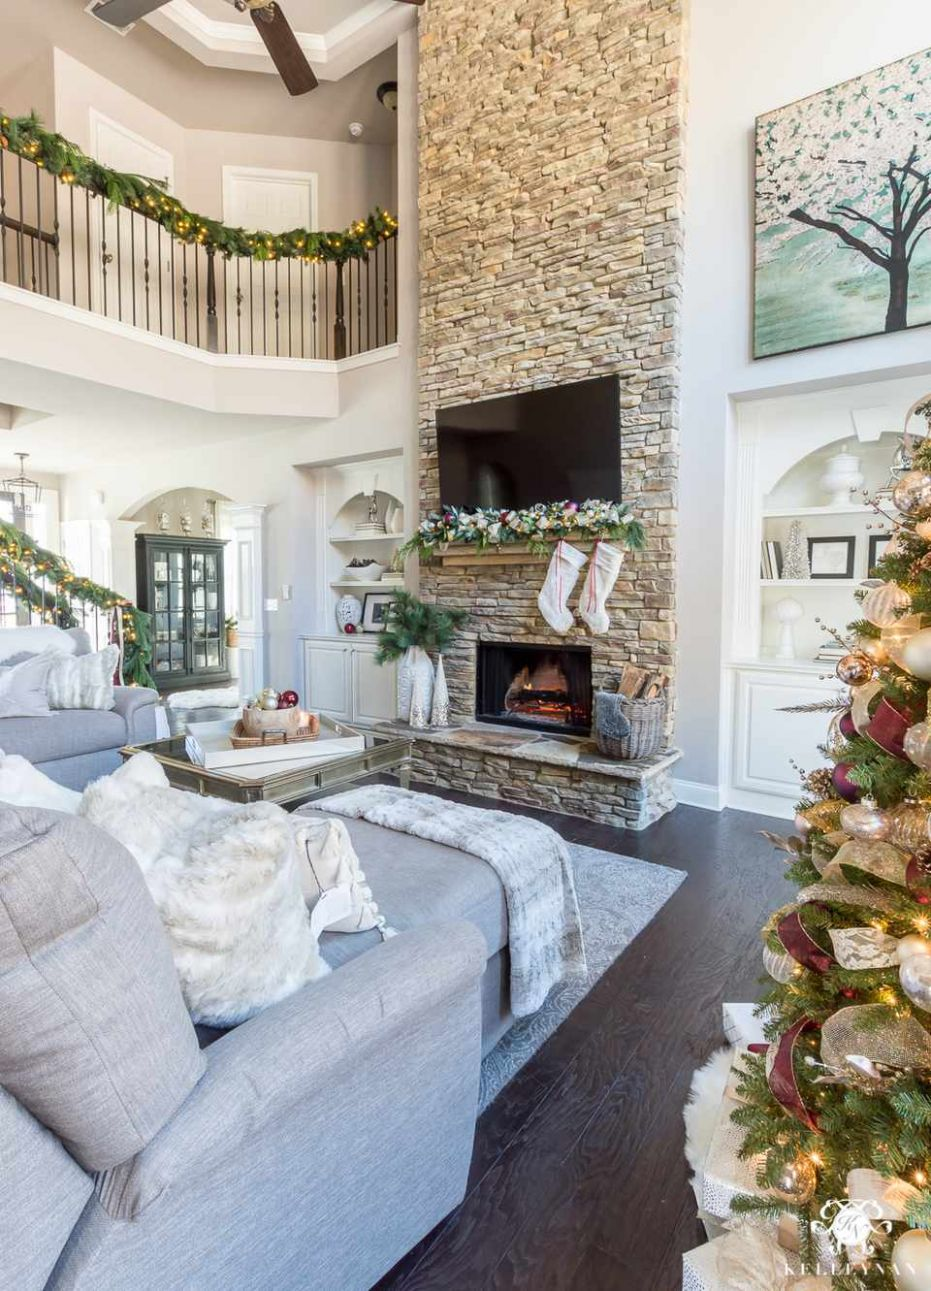 10 Beautiful Ways to Decorate the Living Room for Christmas